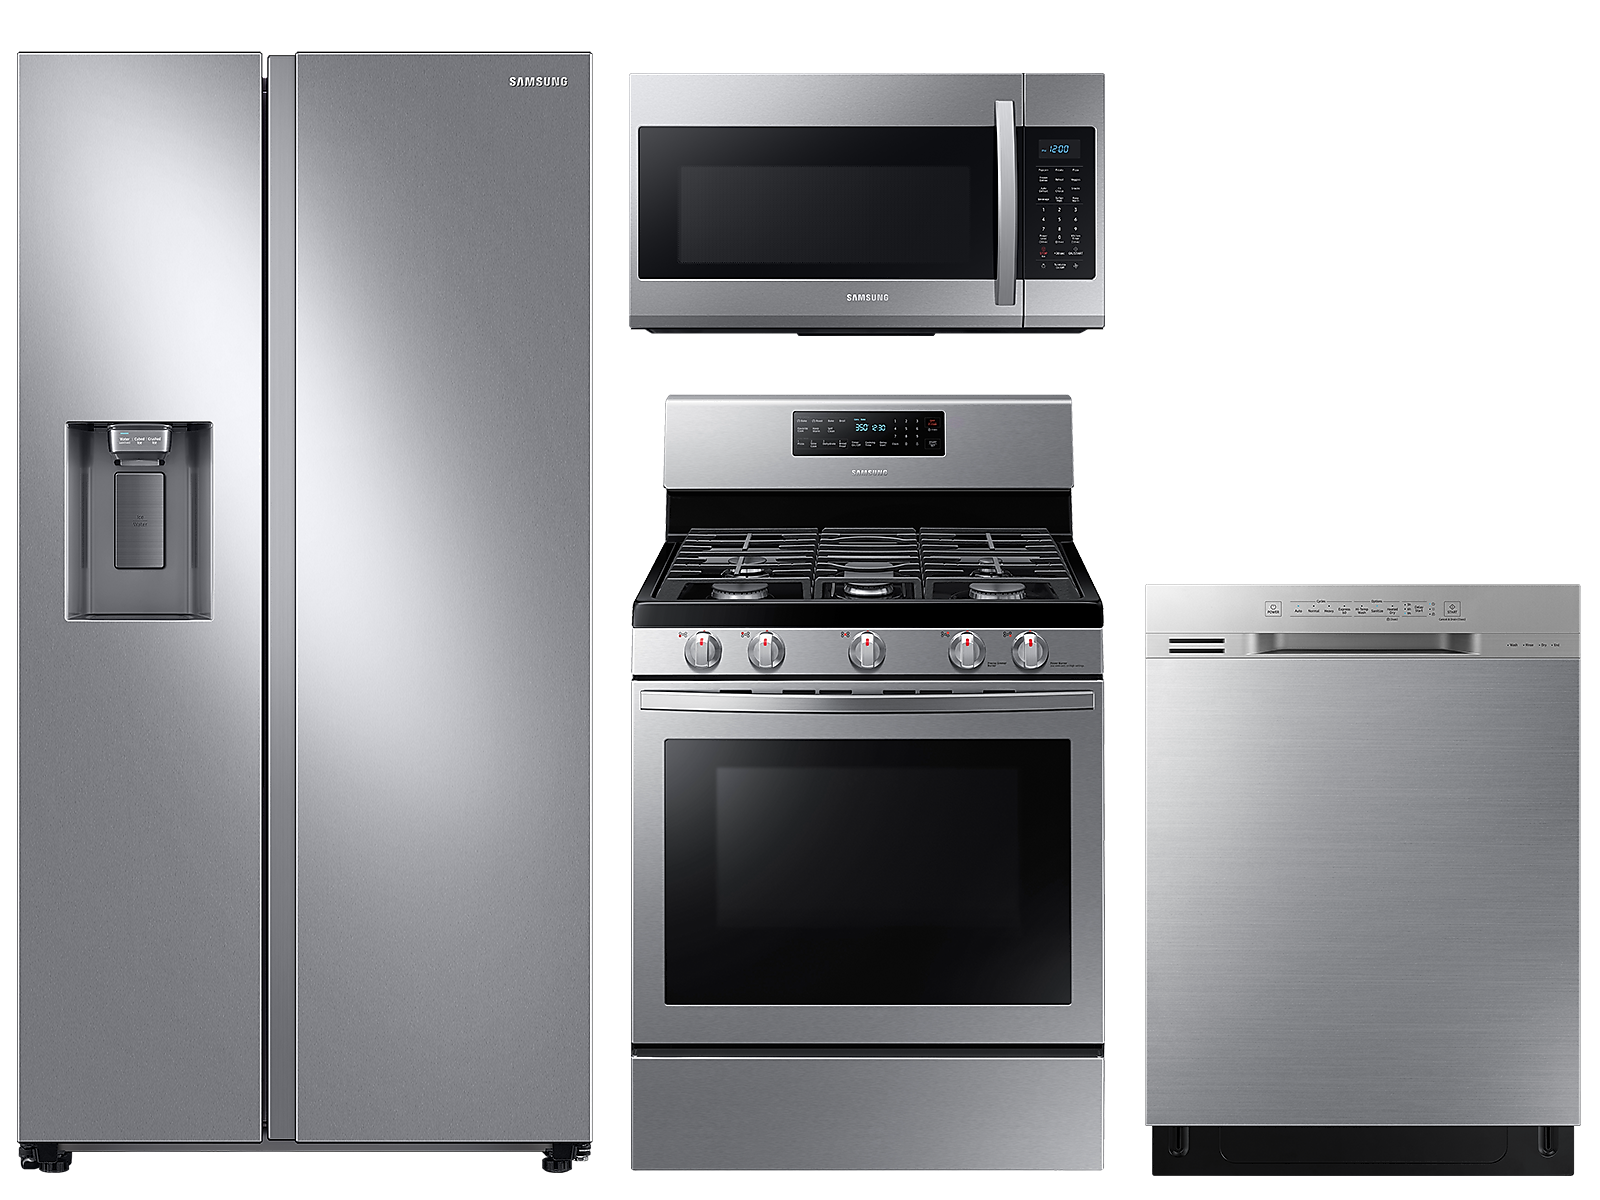 Samsung coupon: Samsung Counter Depth Side-by-Side refrigerator & gas range package in Stainless Steel(BNDL-1590168705840)